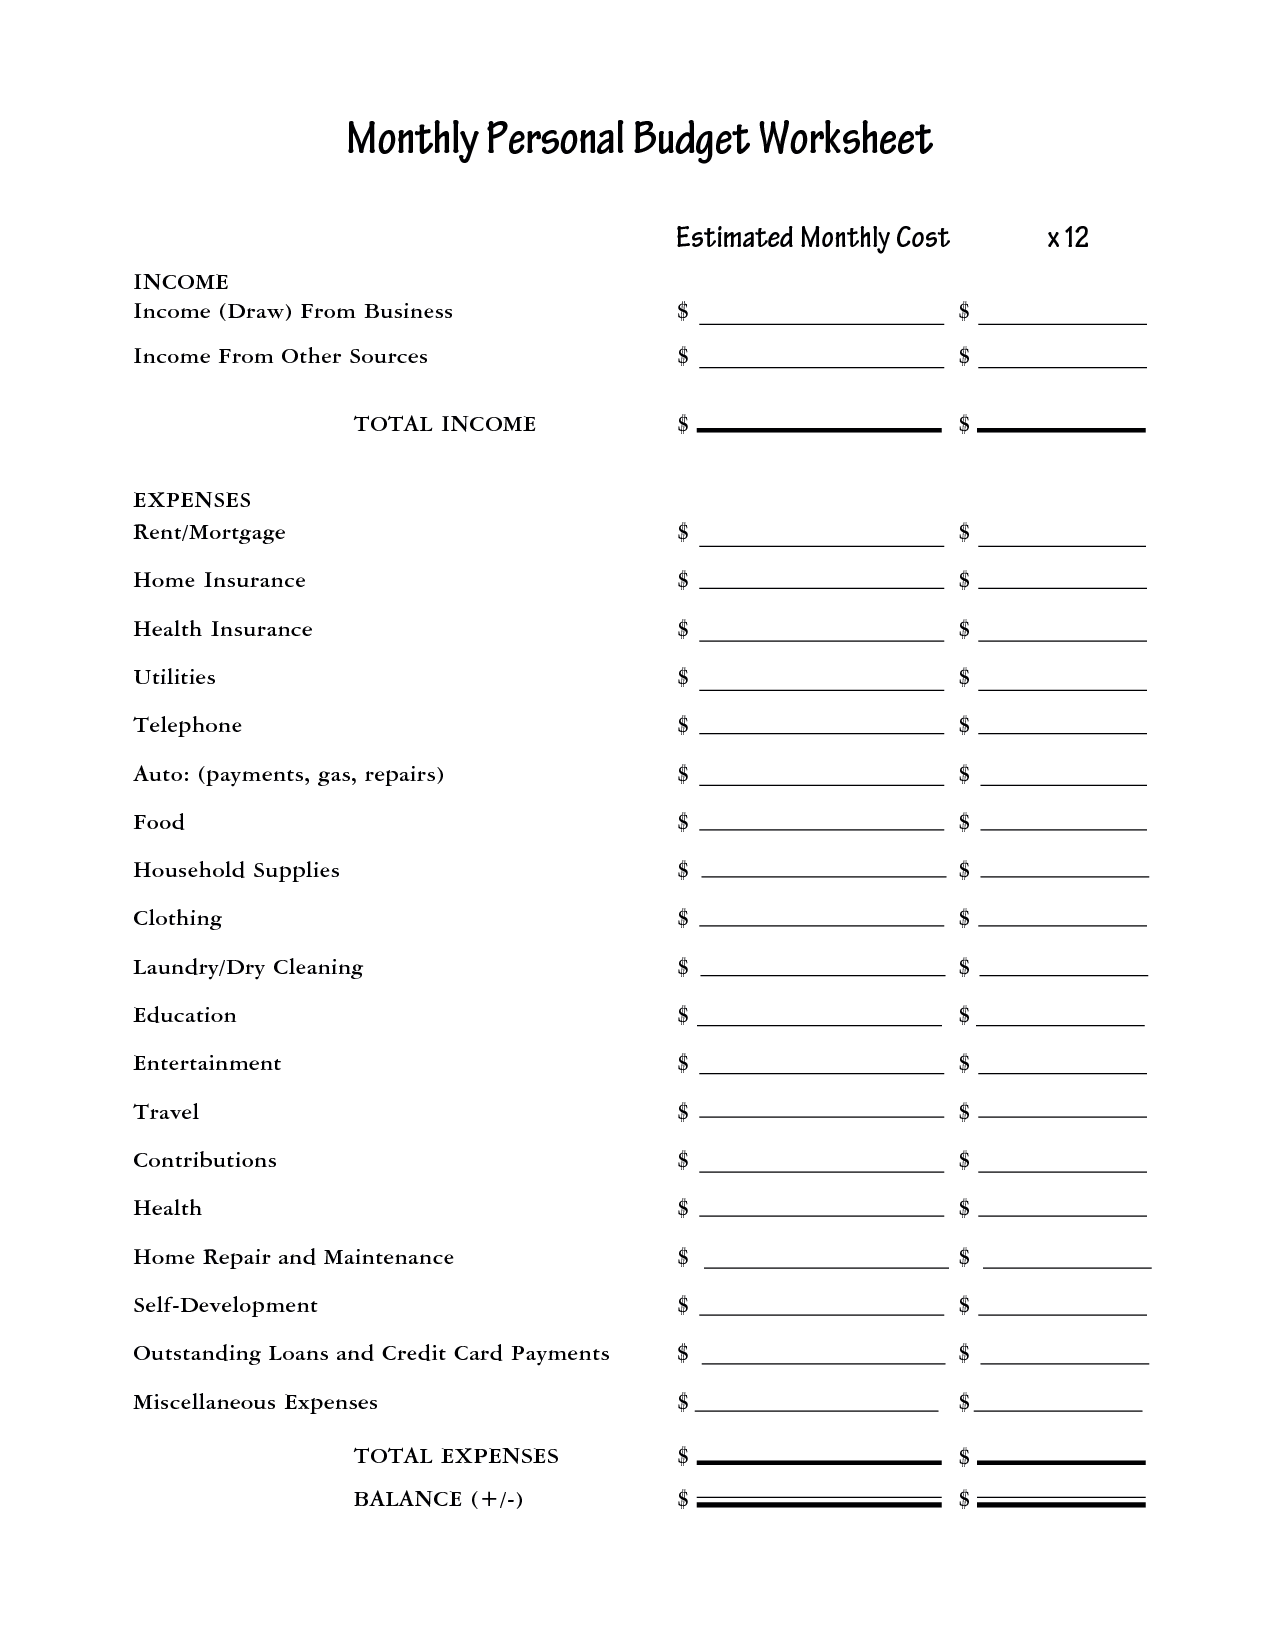 Worksheets Personal Budget Worksheet personal monthly budget worksheet pixelpaperskin blank for the home pinterest